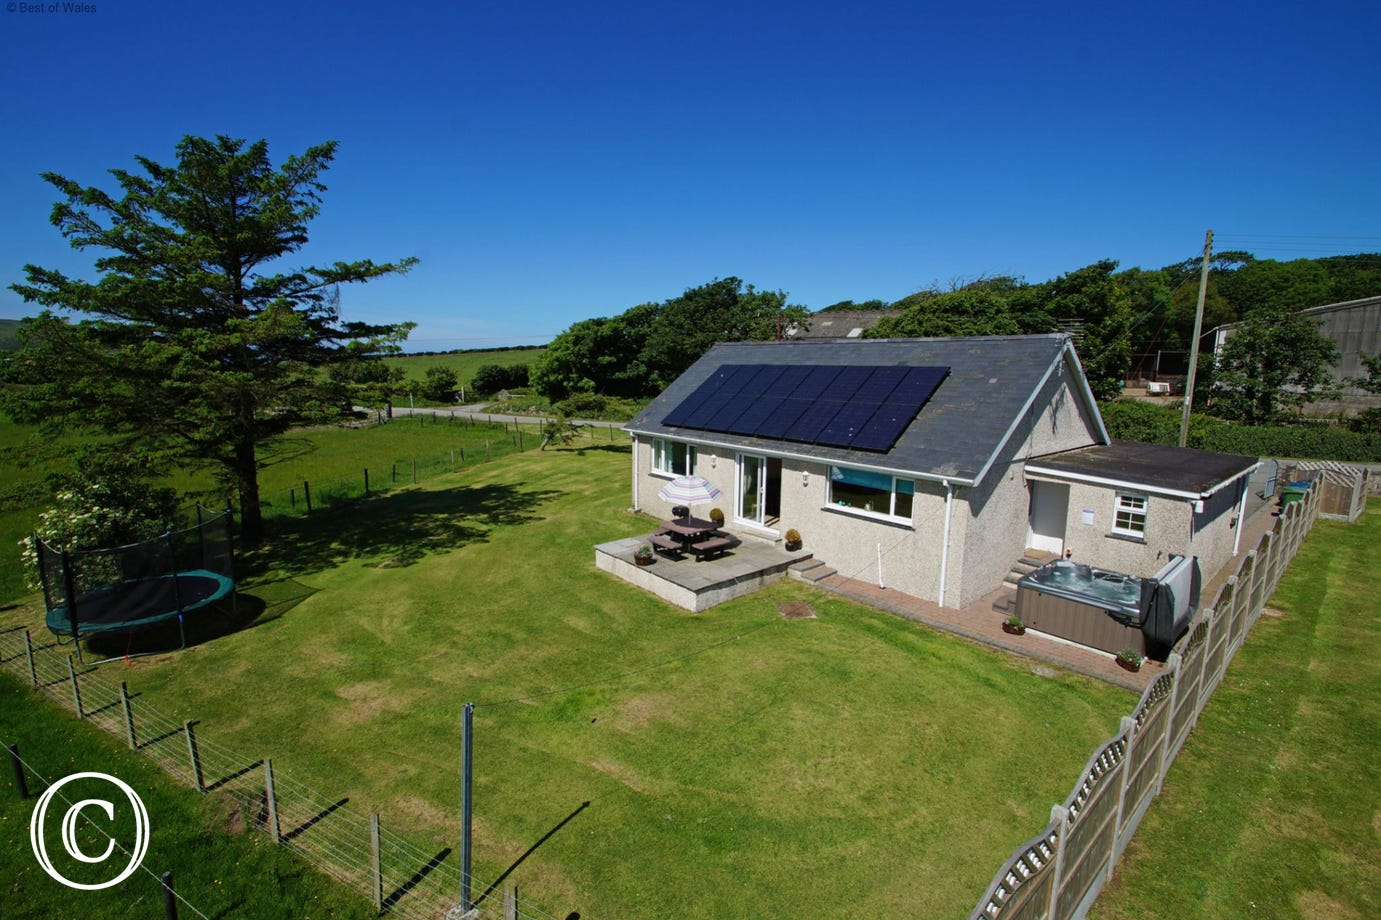 Detached, 5 star cottage - hot tub and walking distance to sandy beach